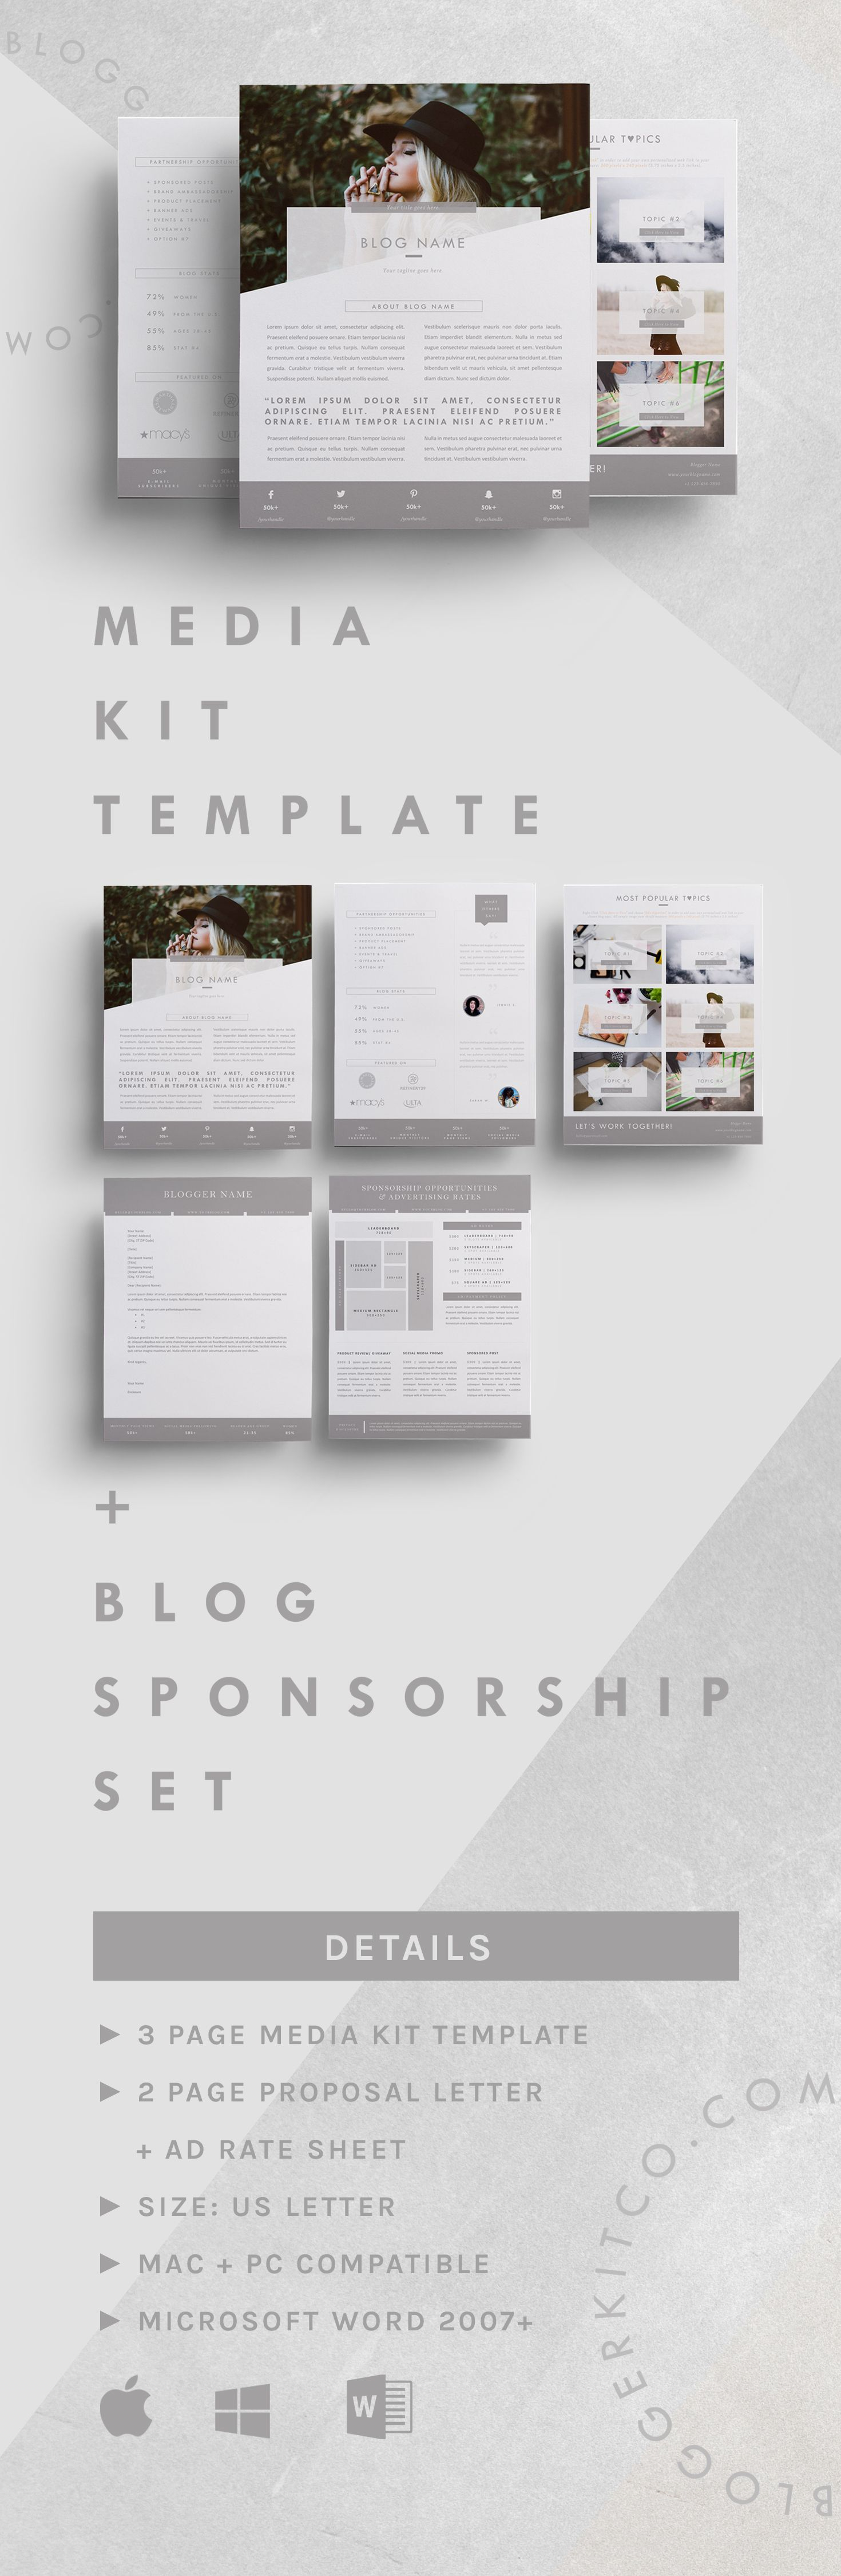 Blog Sponsorship Proposal Letter Template + Ad Rate Sheet (MS Word)